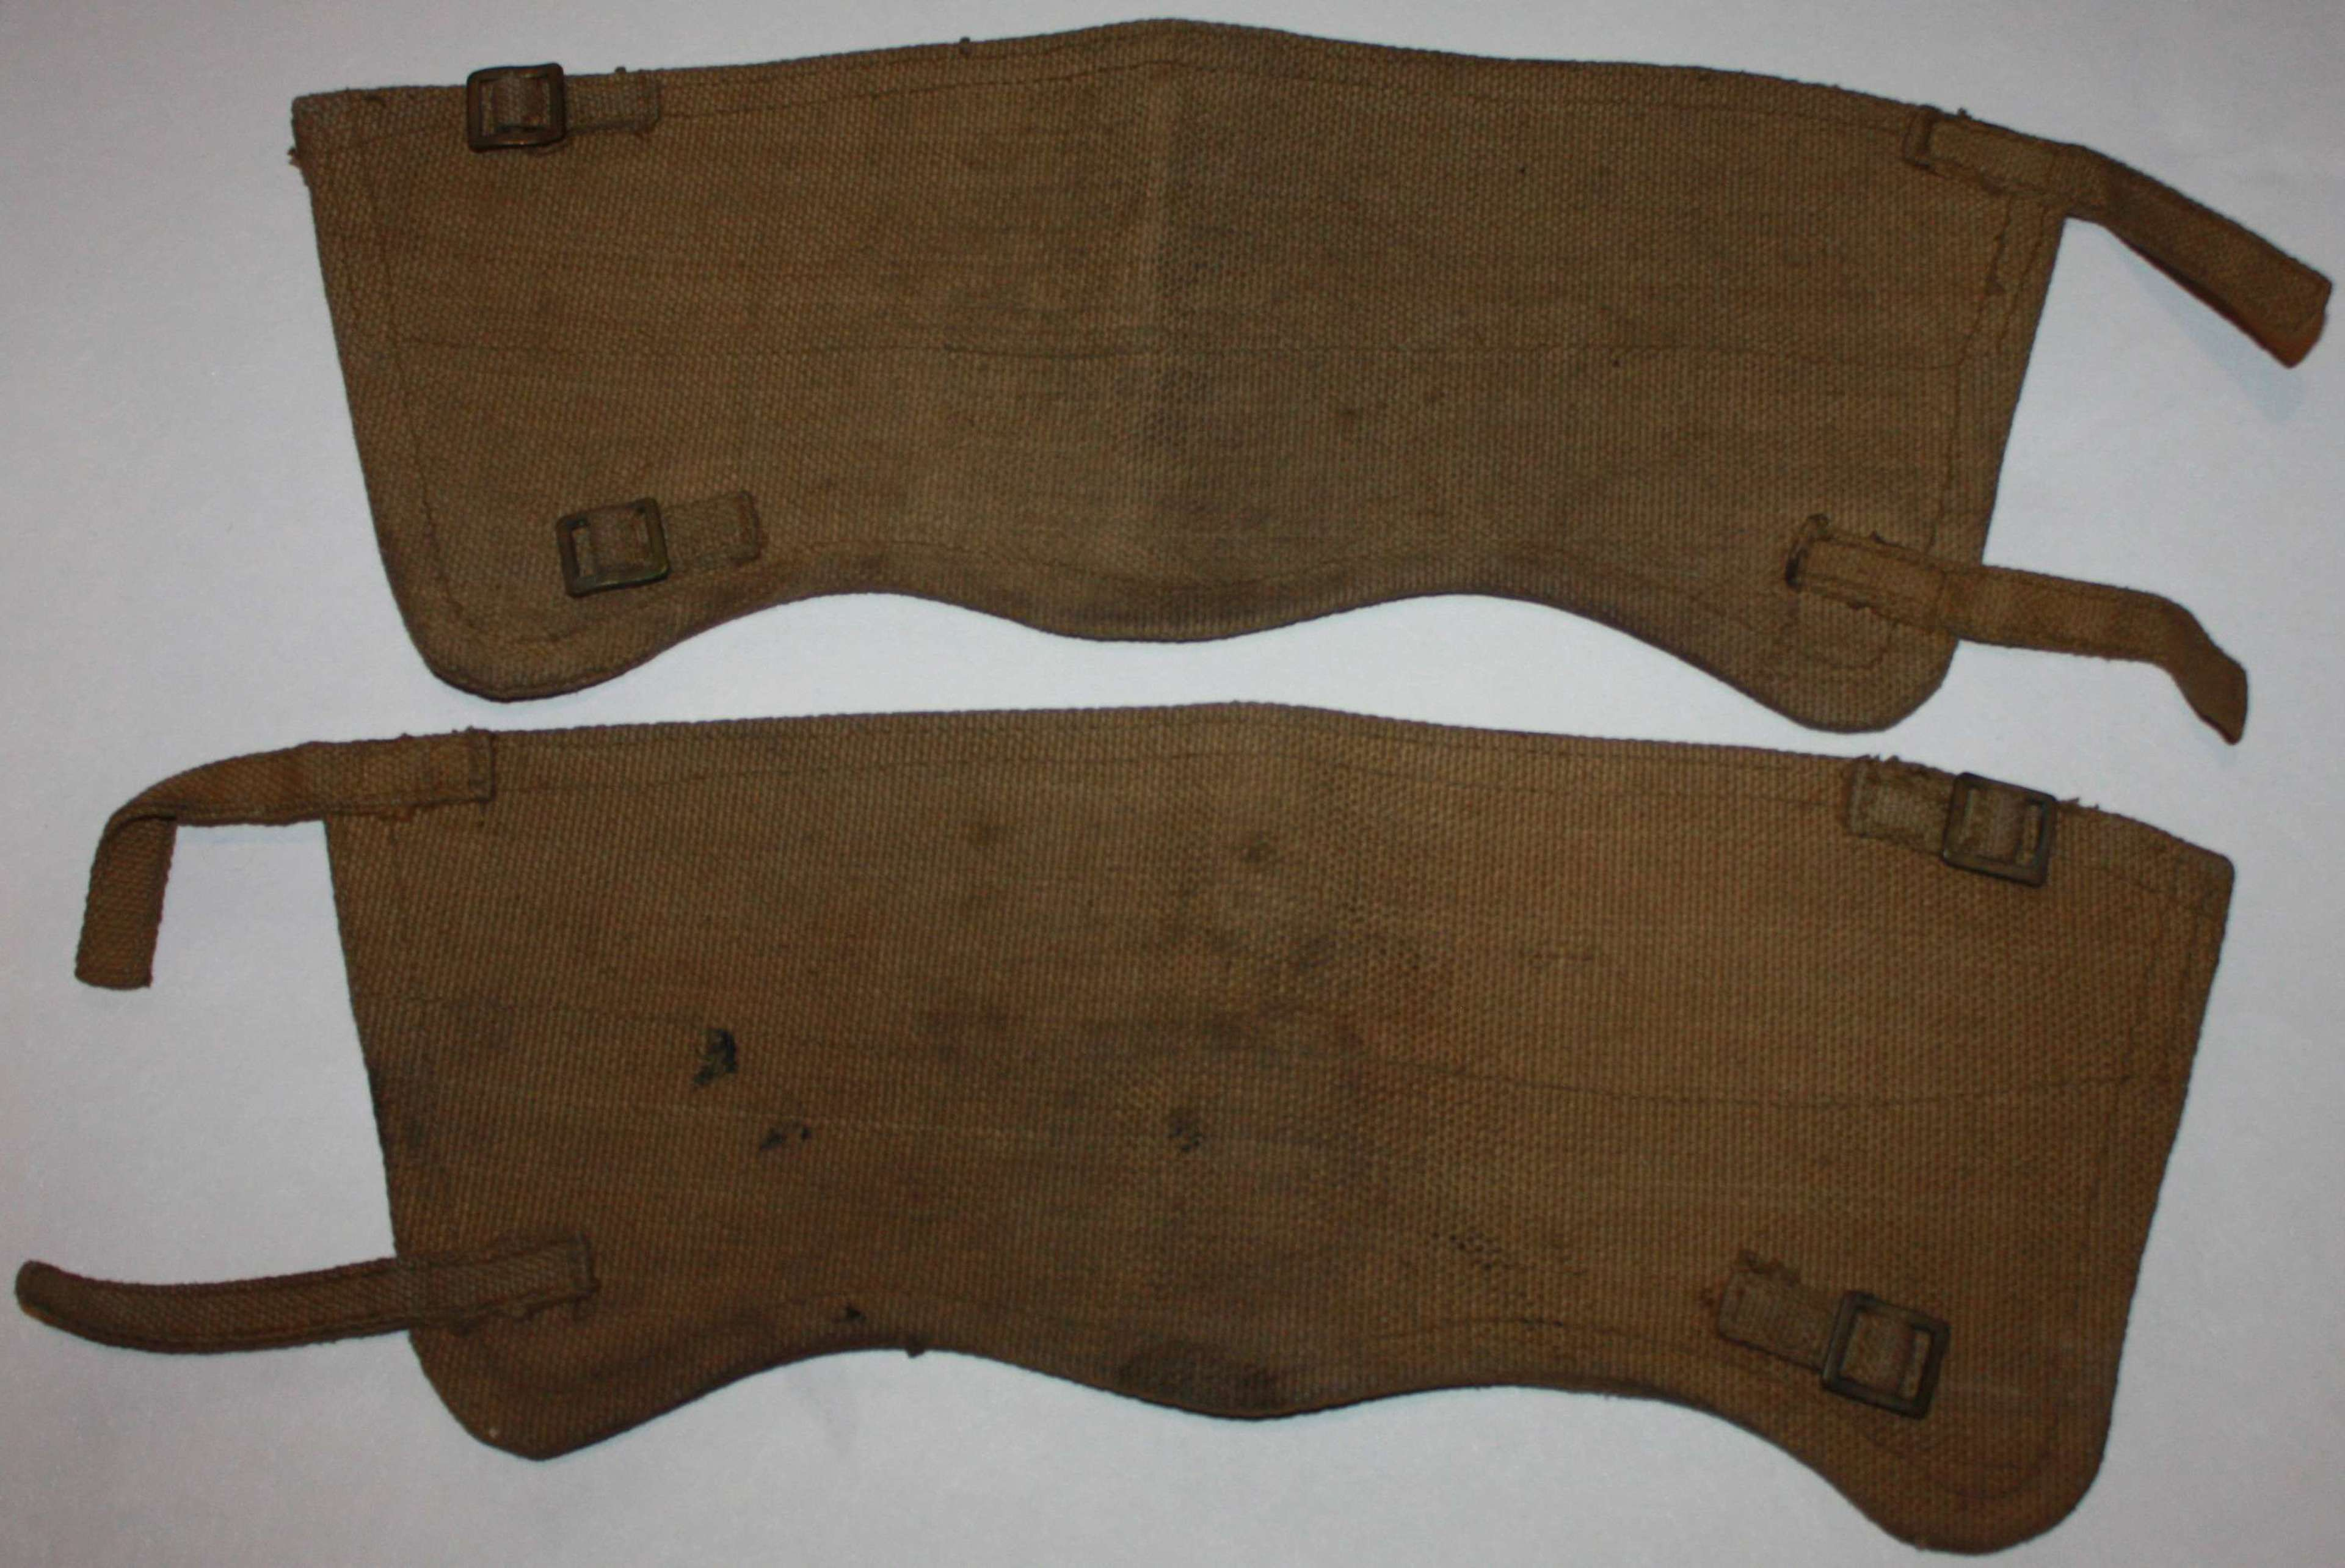 A PAIR OF 1940 USED WEBBING GATTERS